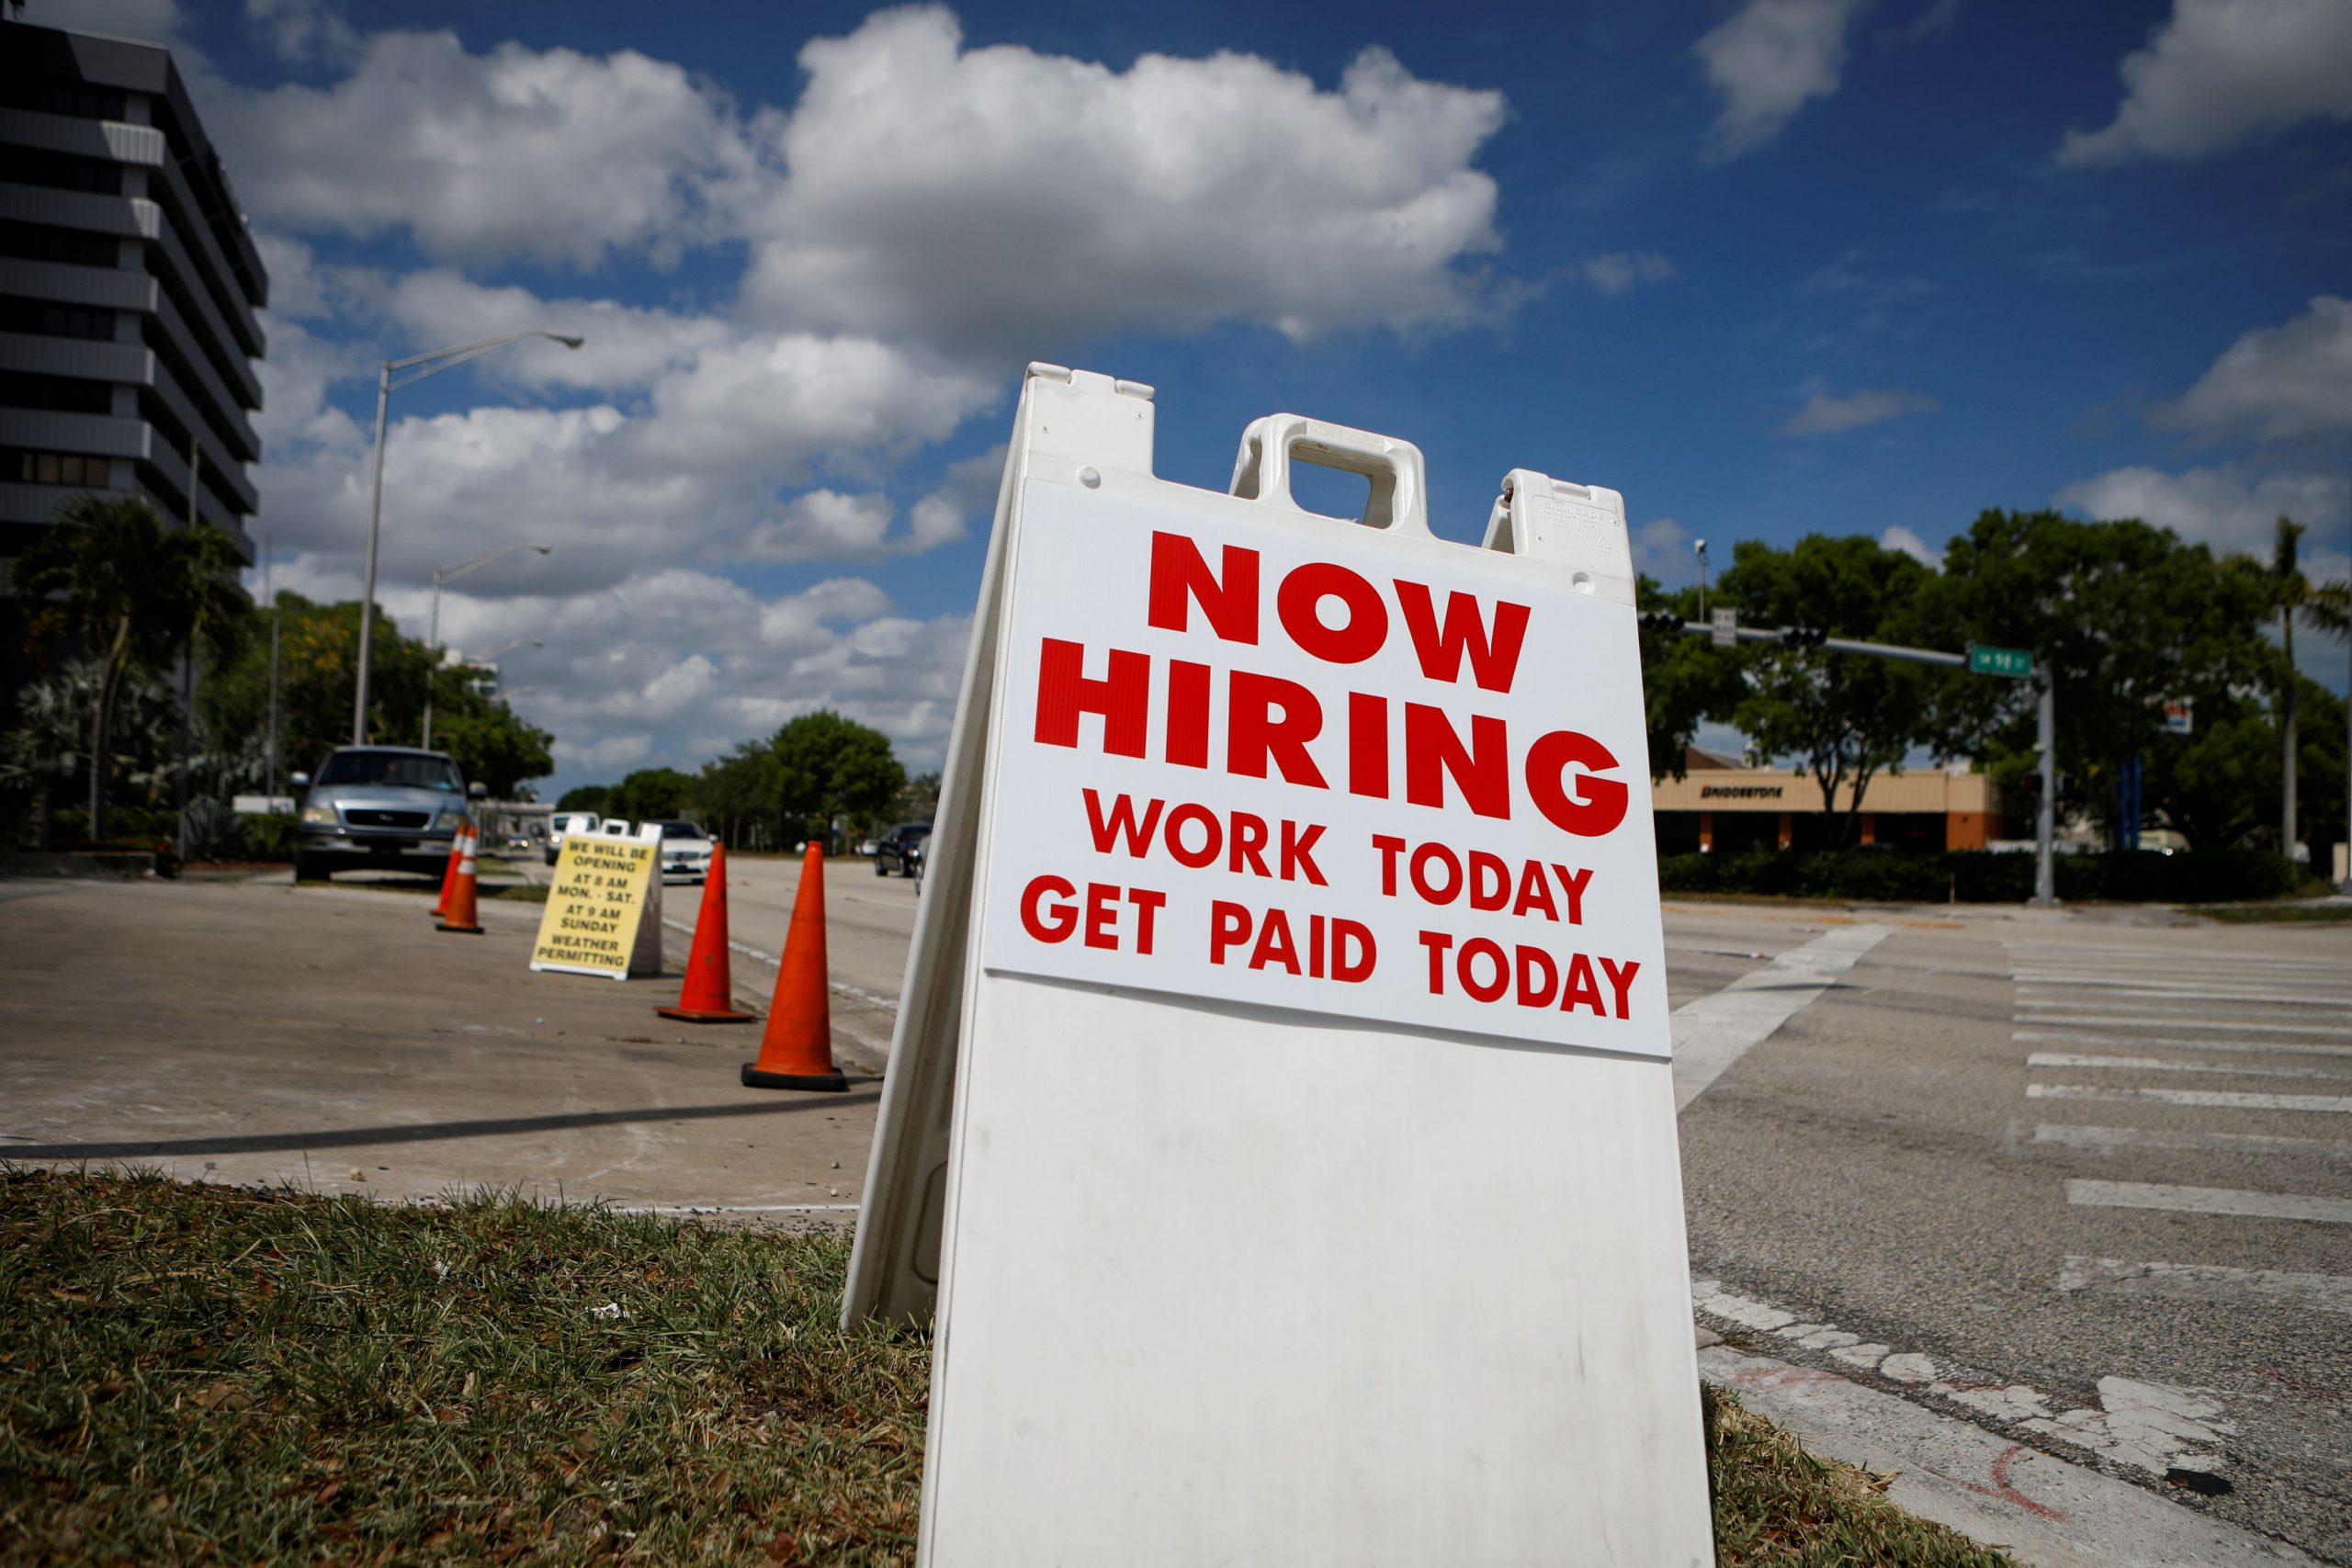 Private payrolls grow by 428,000 but miss expectations